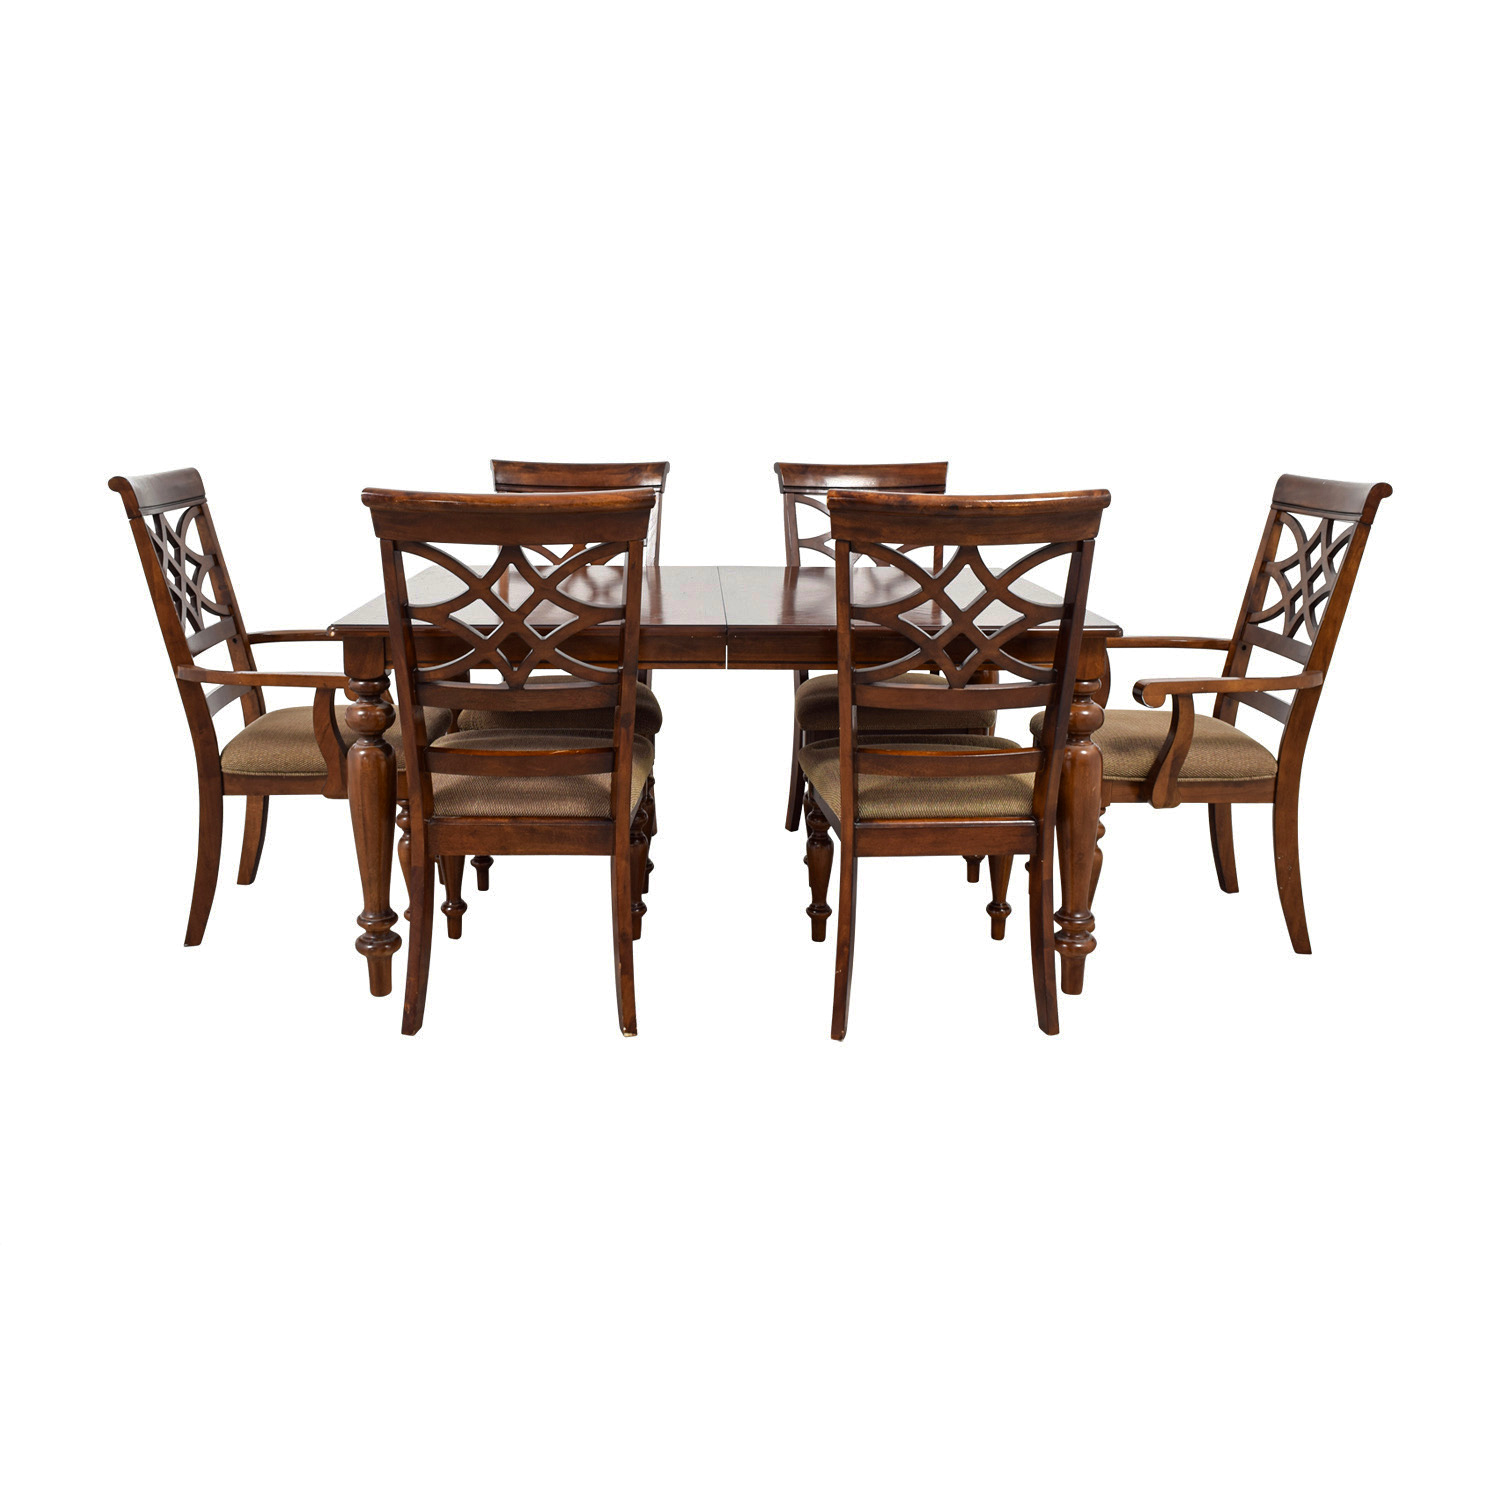 Bob's Furniture Bob's Furniture Wood Dining Set Table with Extention Leaf